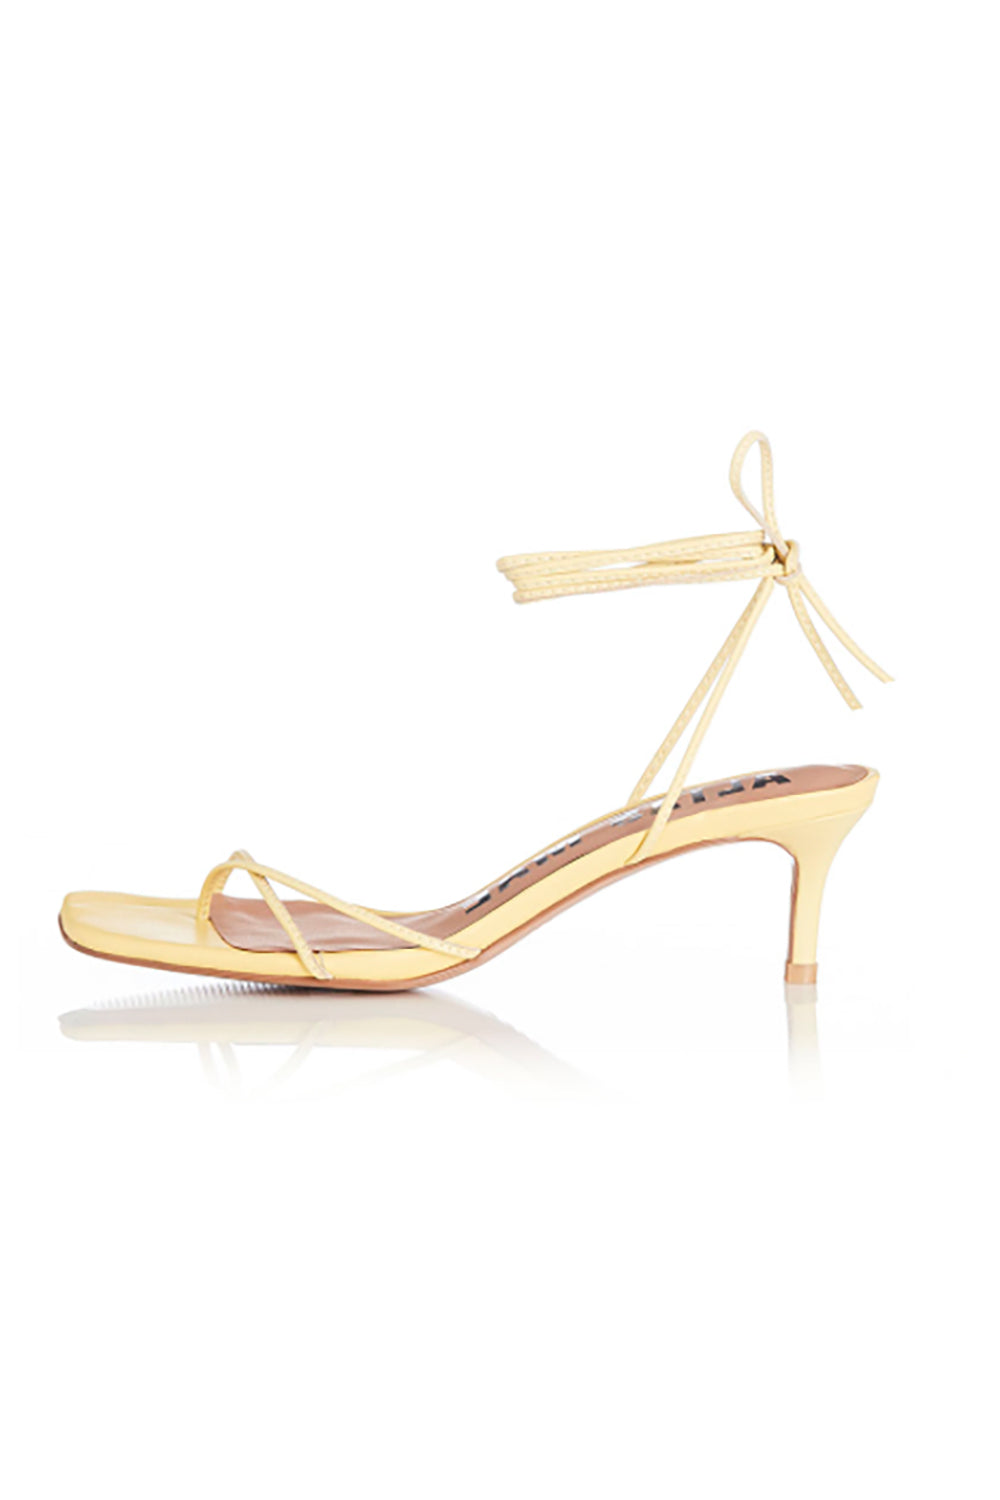 Alias Mae Ellery Heel in Lemon Leather